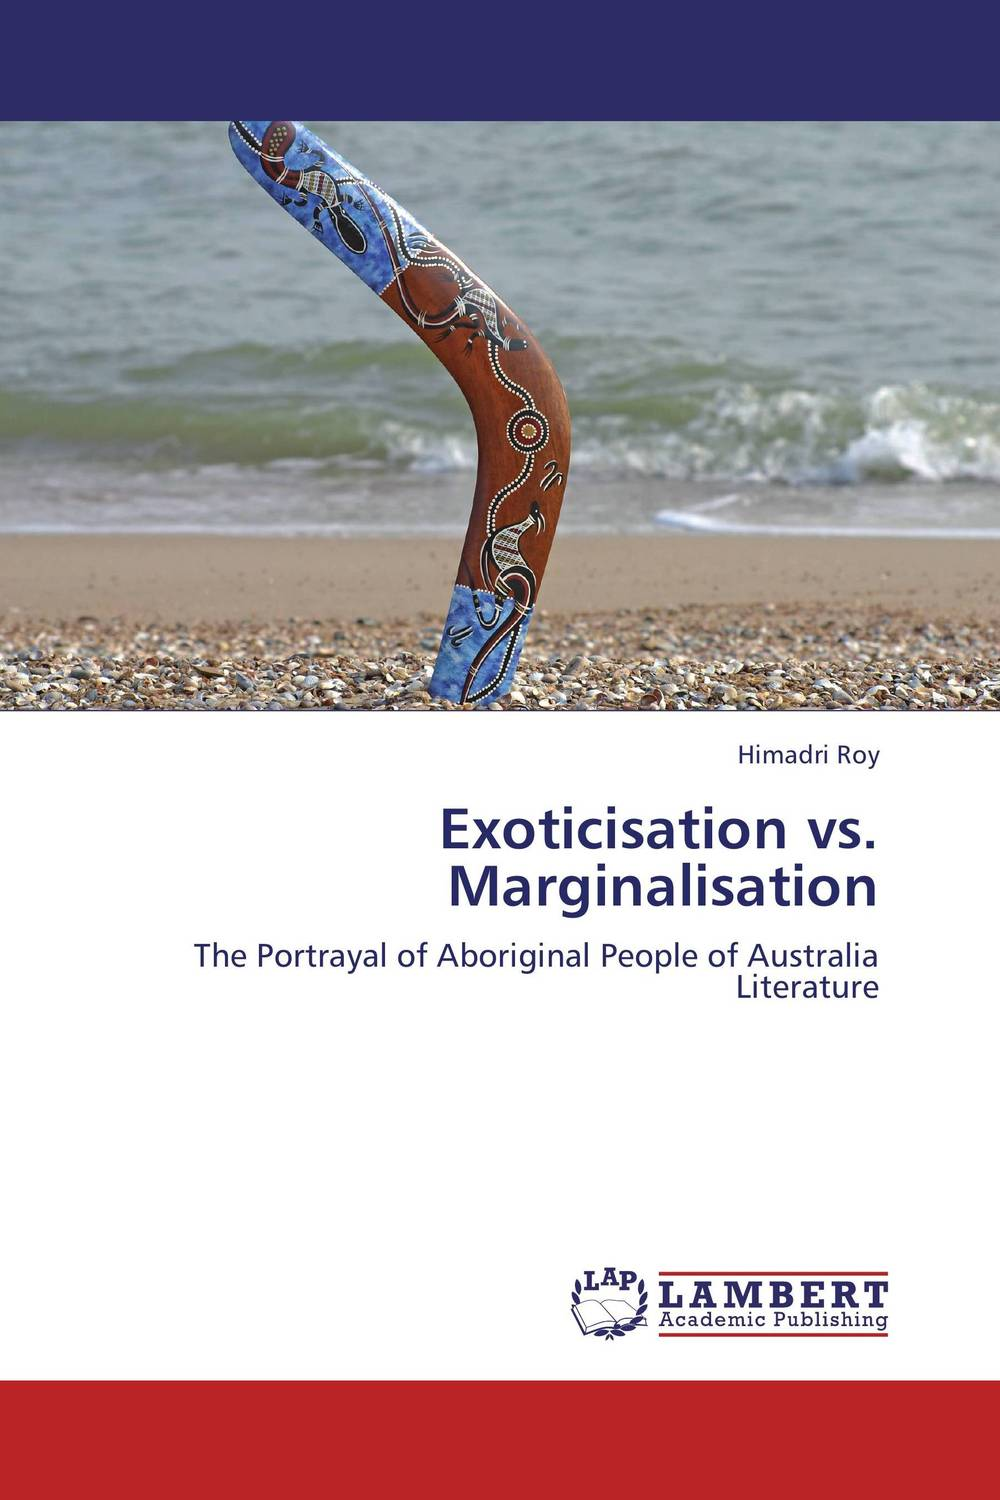 Exoticisation vs. Marginalisation